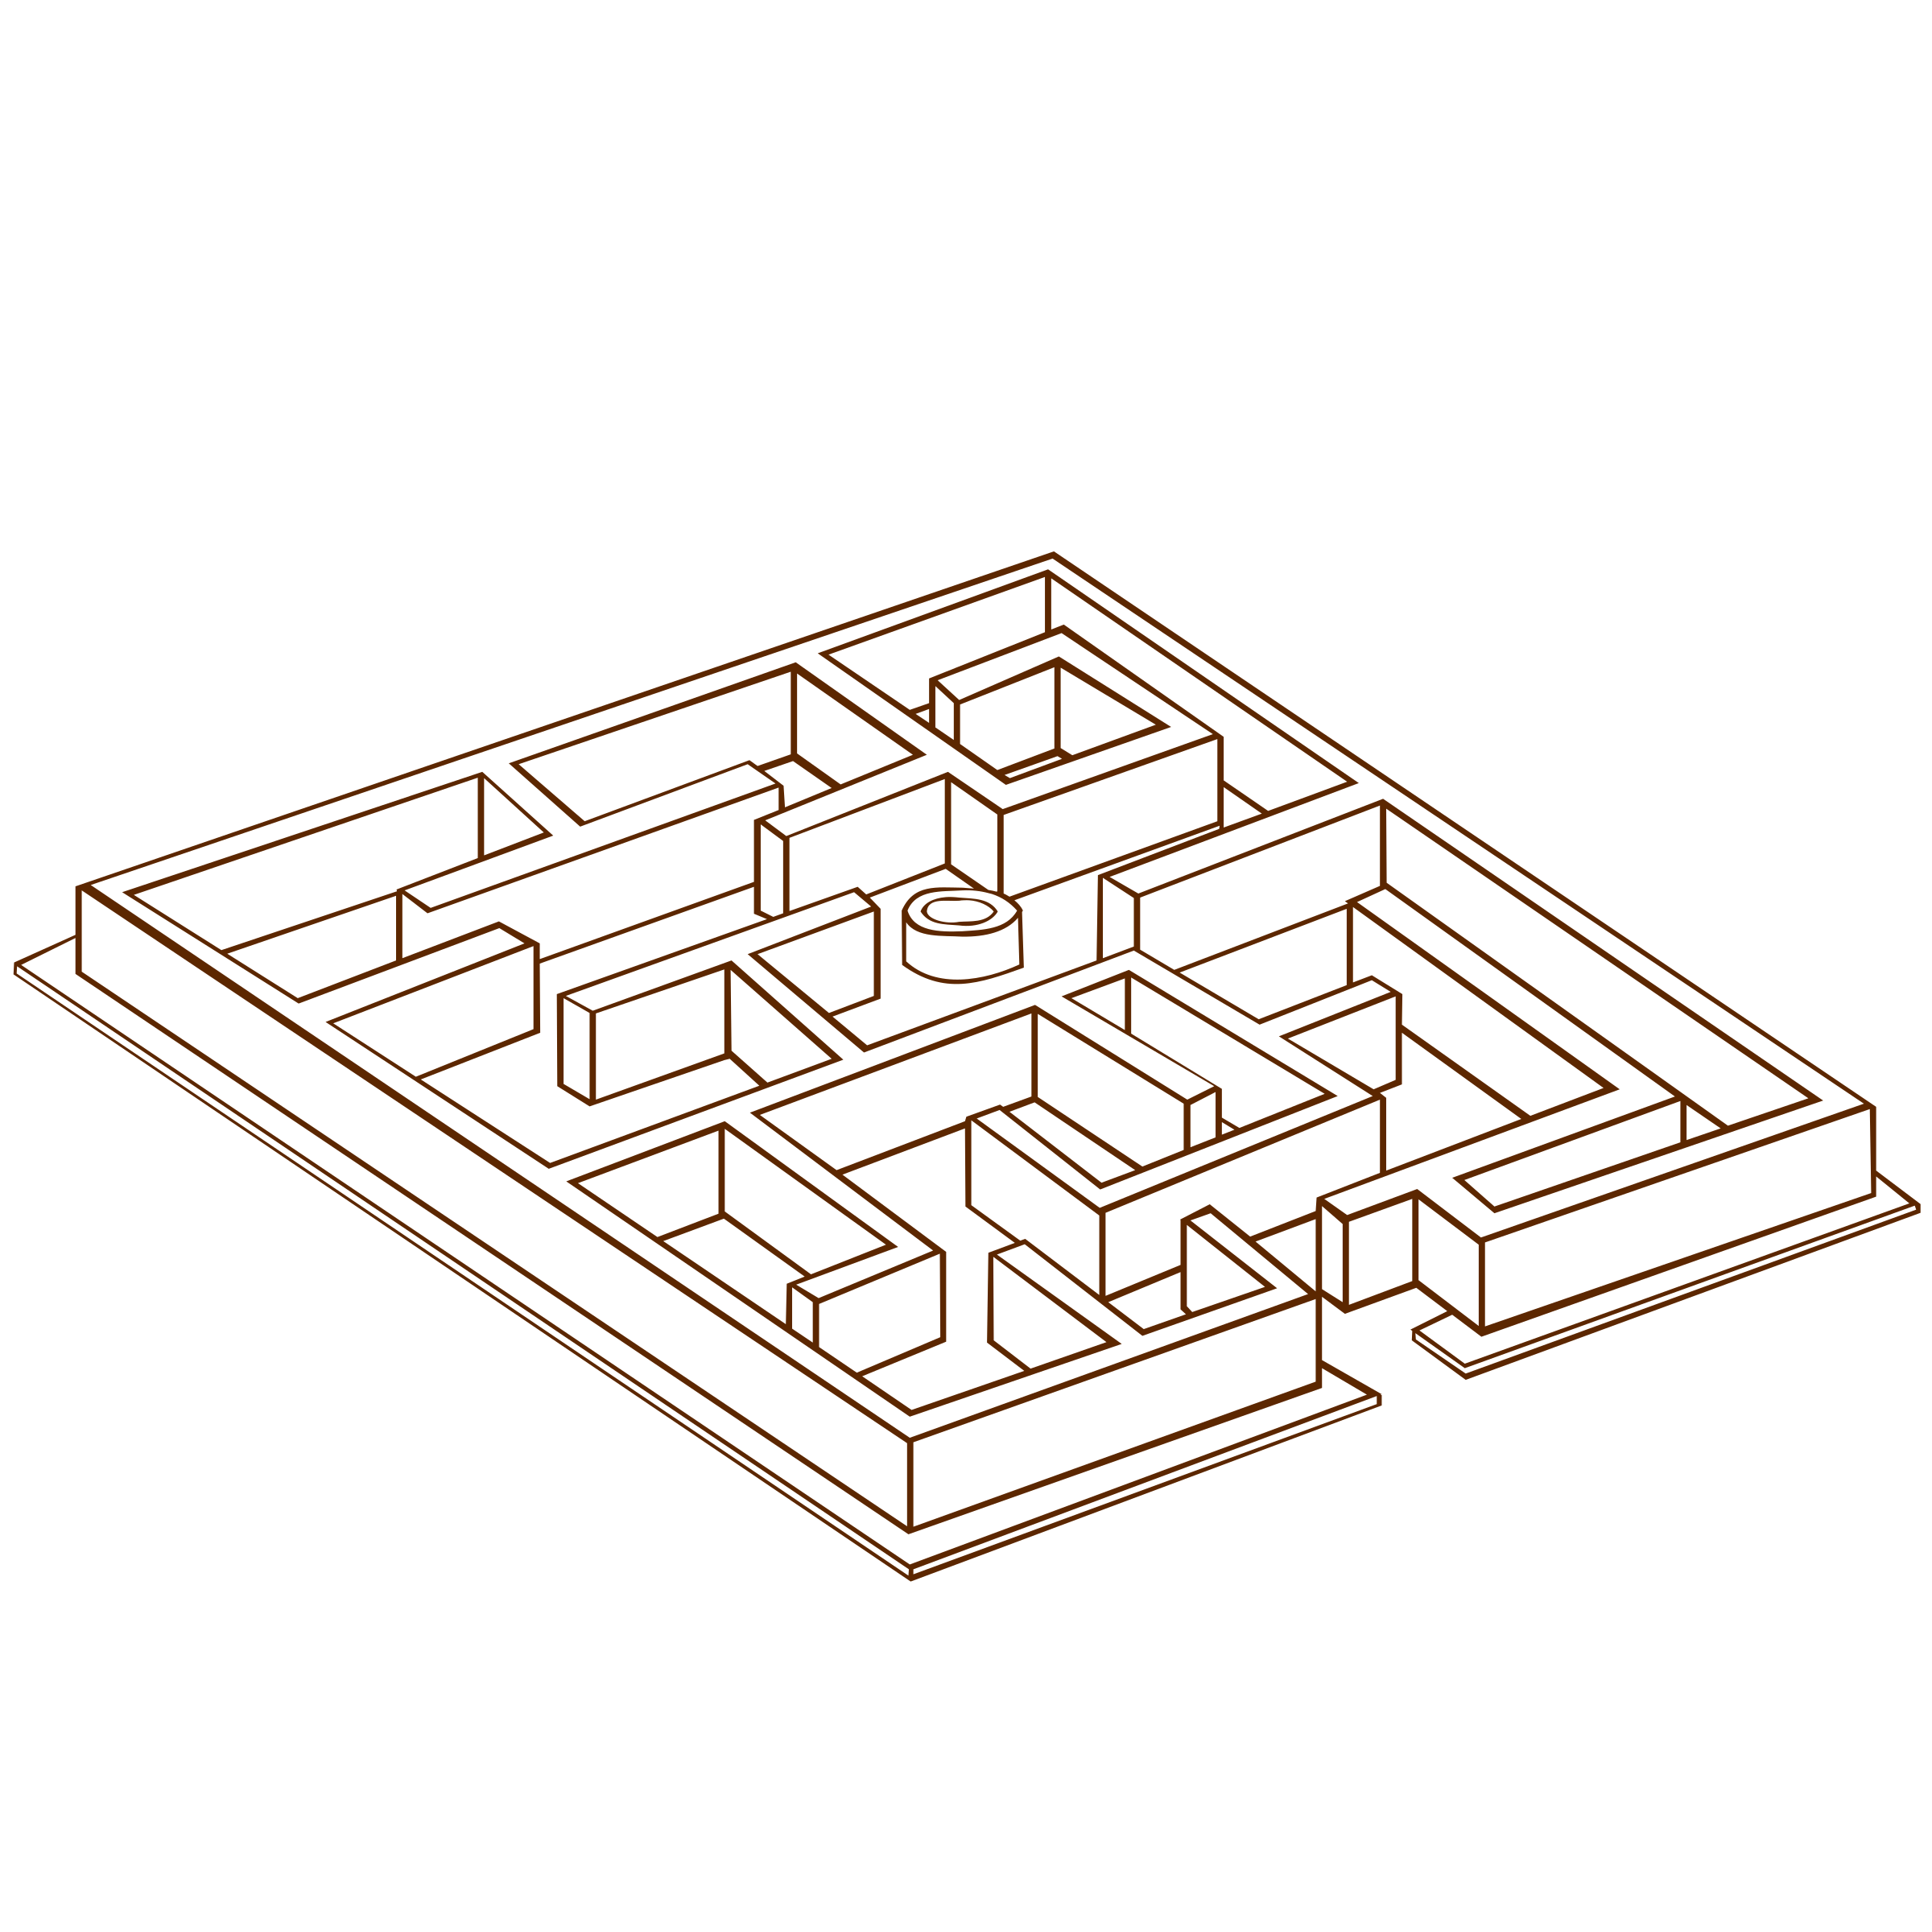 RPG map symbols Maze 2 by nicubunu